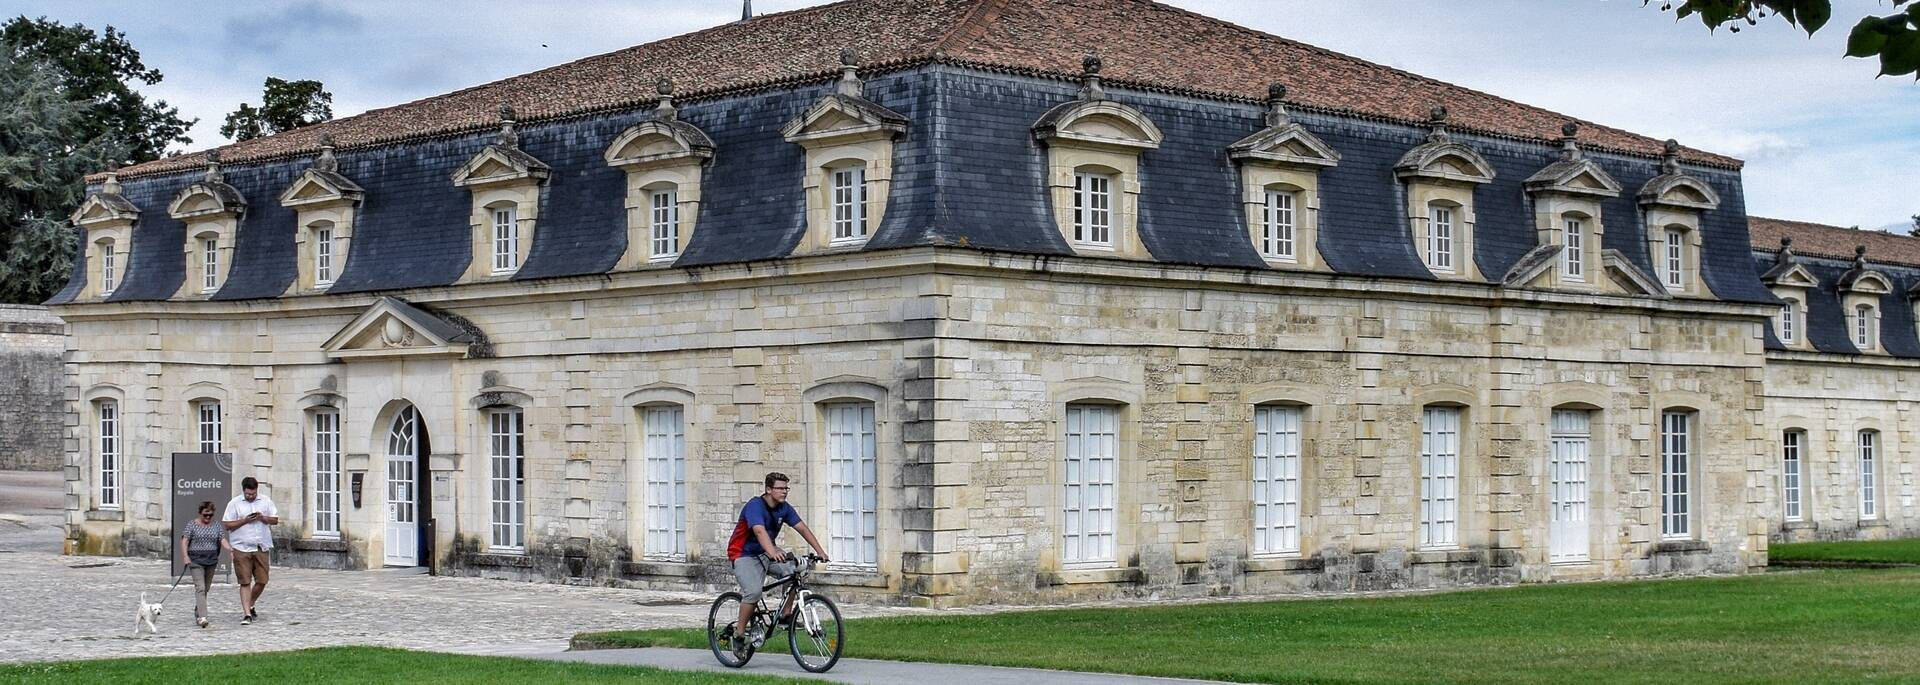 Discover the garden of the Corderie Royale on foot or by bike - © Laurent Sanleme